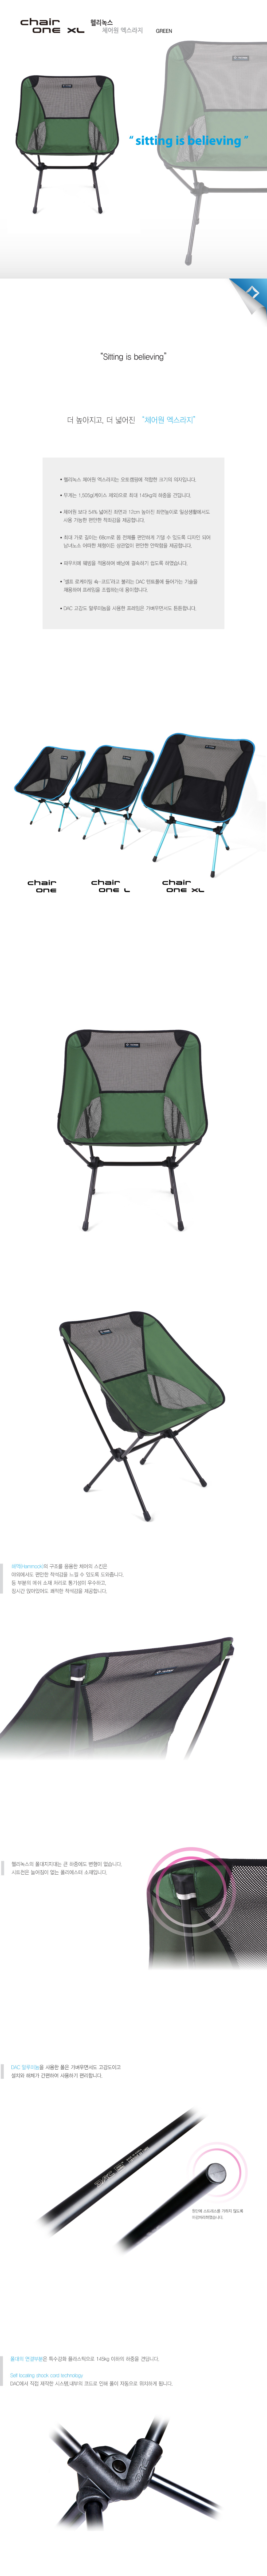 20170613-Helinox_chair-one_XL--green-상품페이지-1.jpg